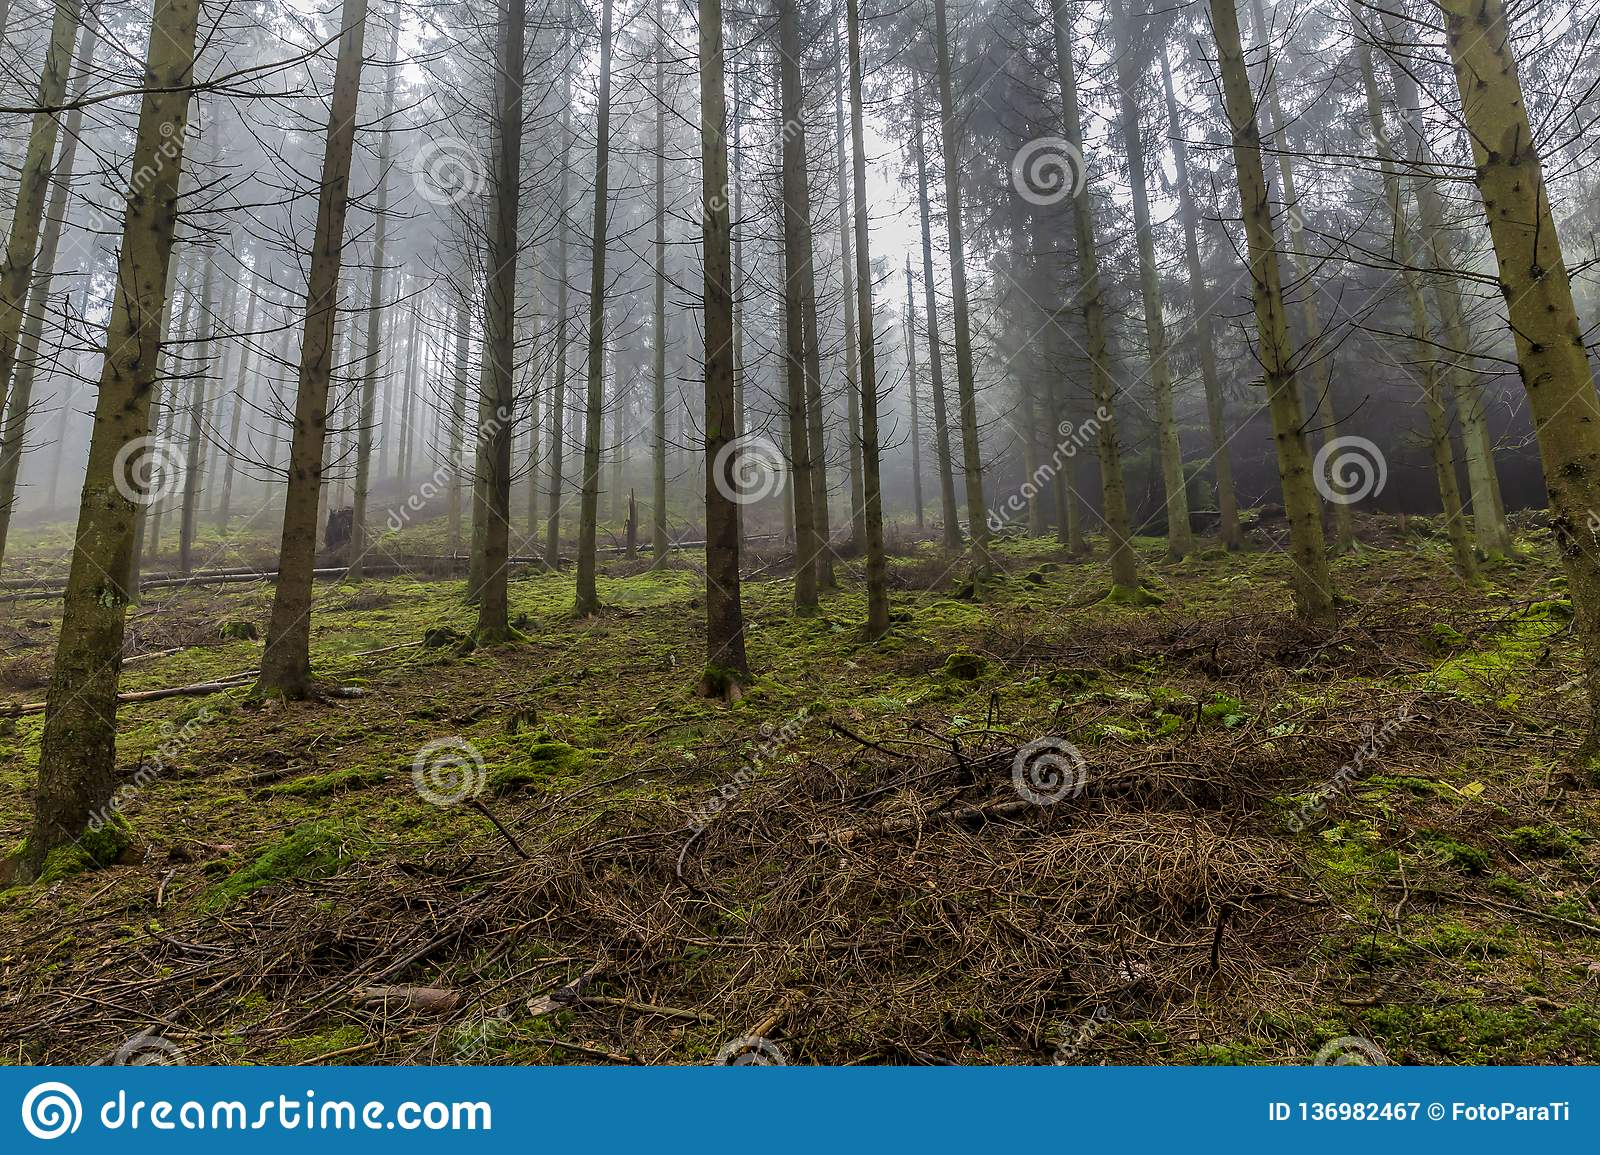 Image of tall pine trees in the forest with moss and branches on the ground